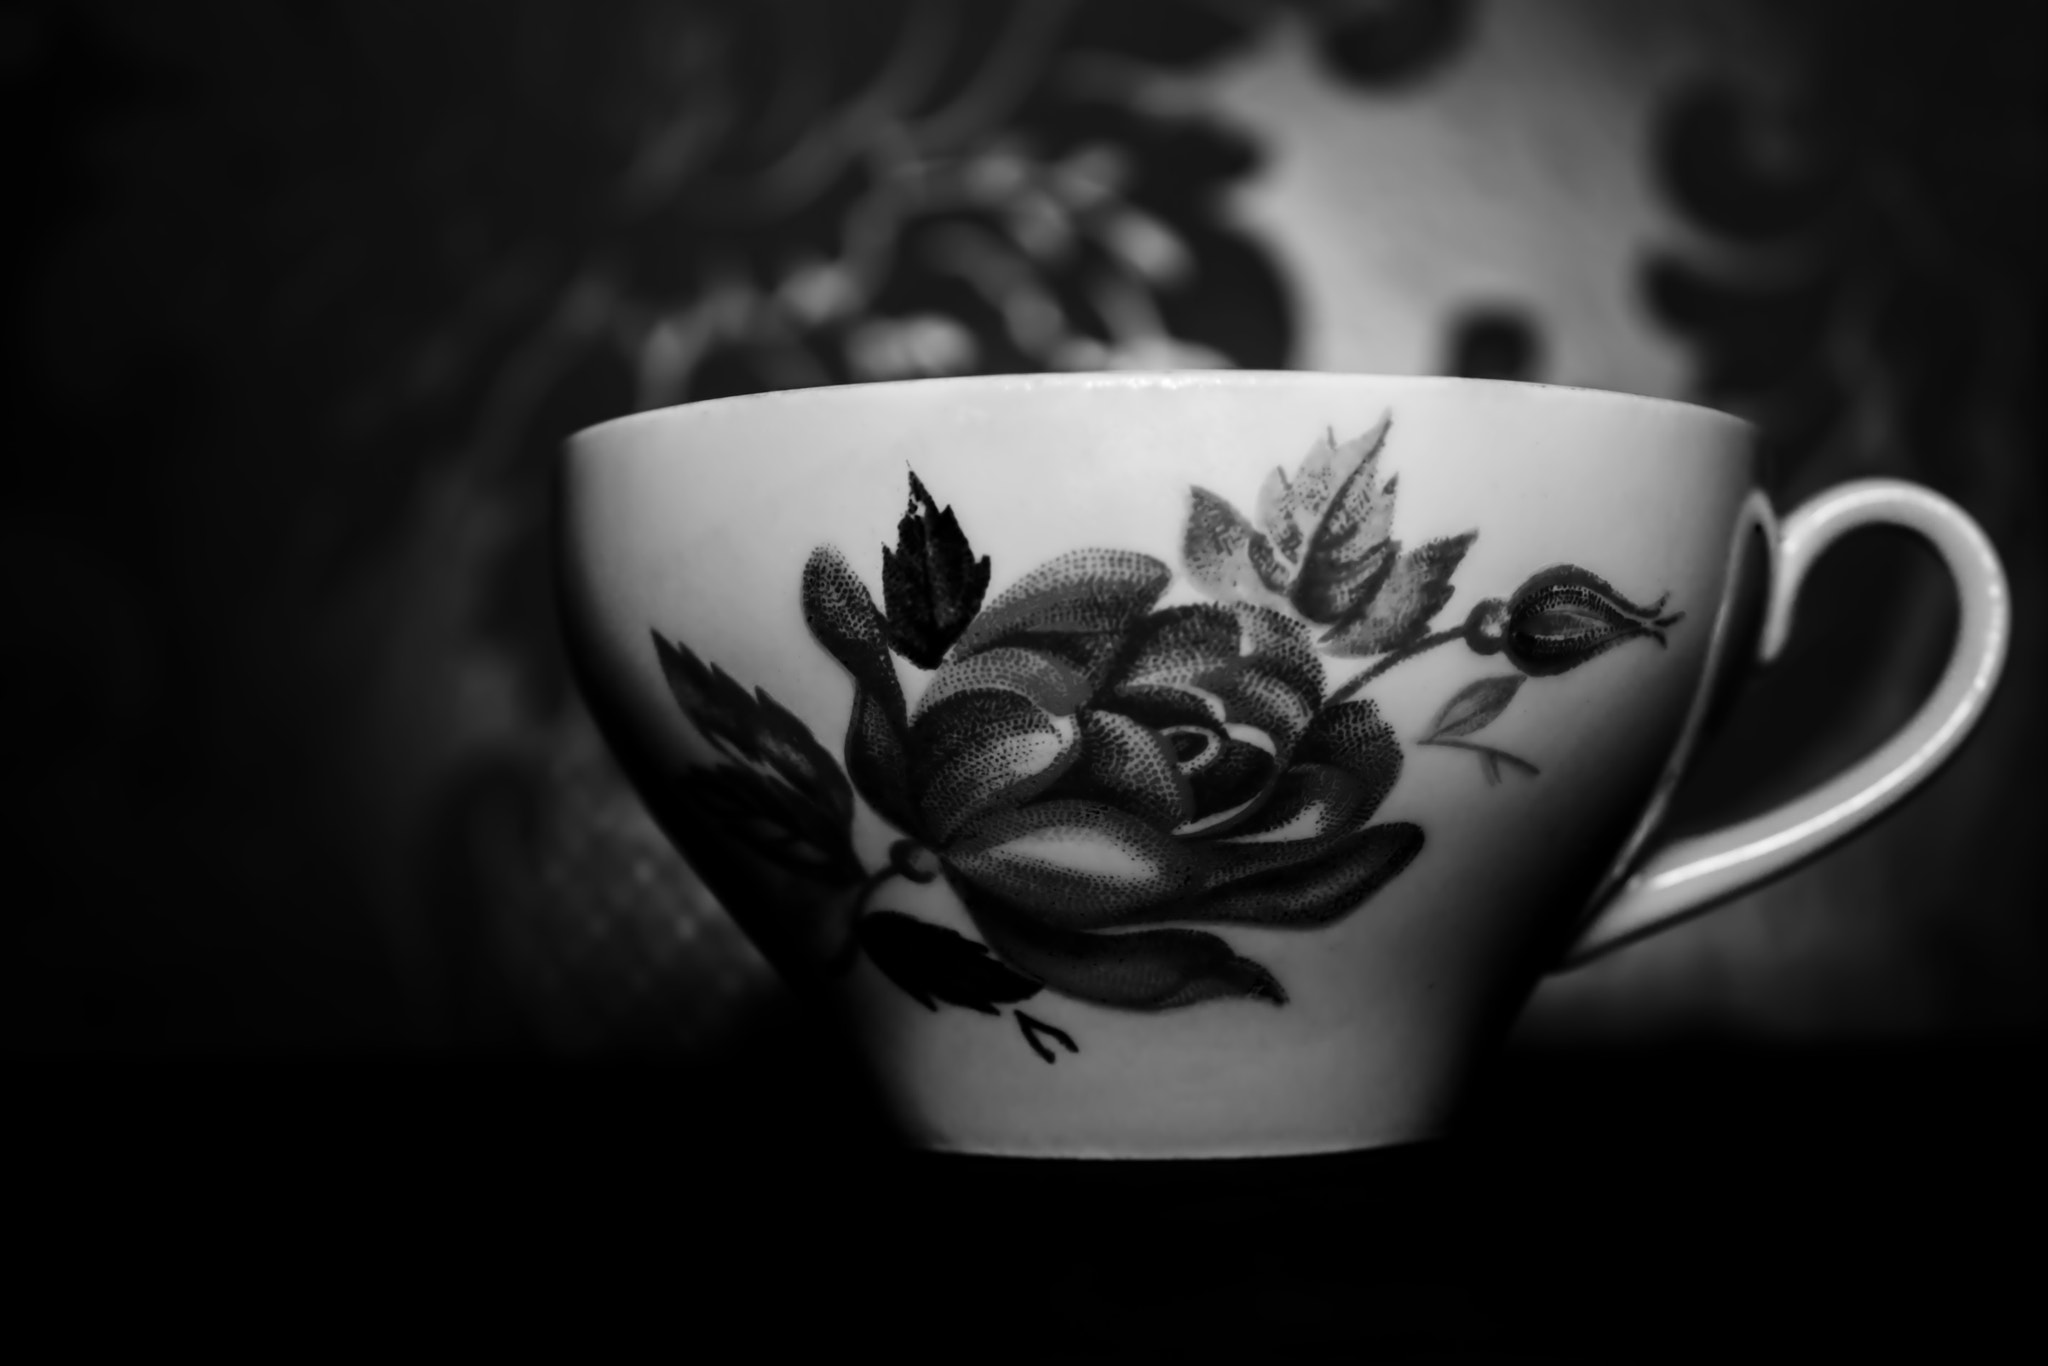 Photograph Taza Perfecta ( Flawless Cup) by Nina Olaqi on 500px